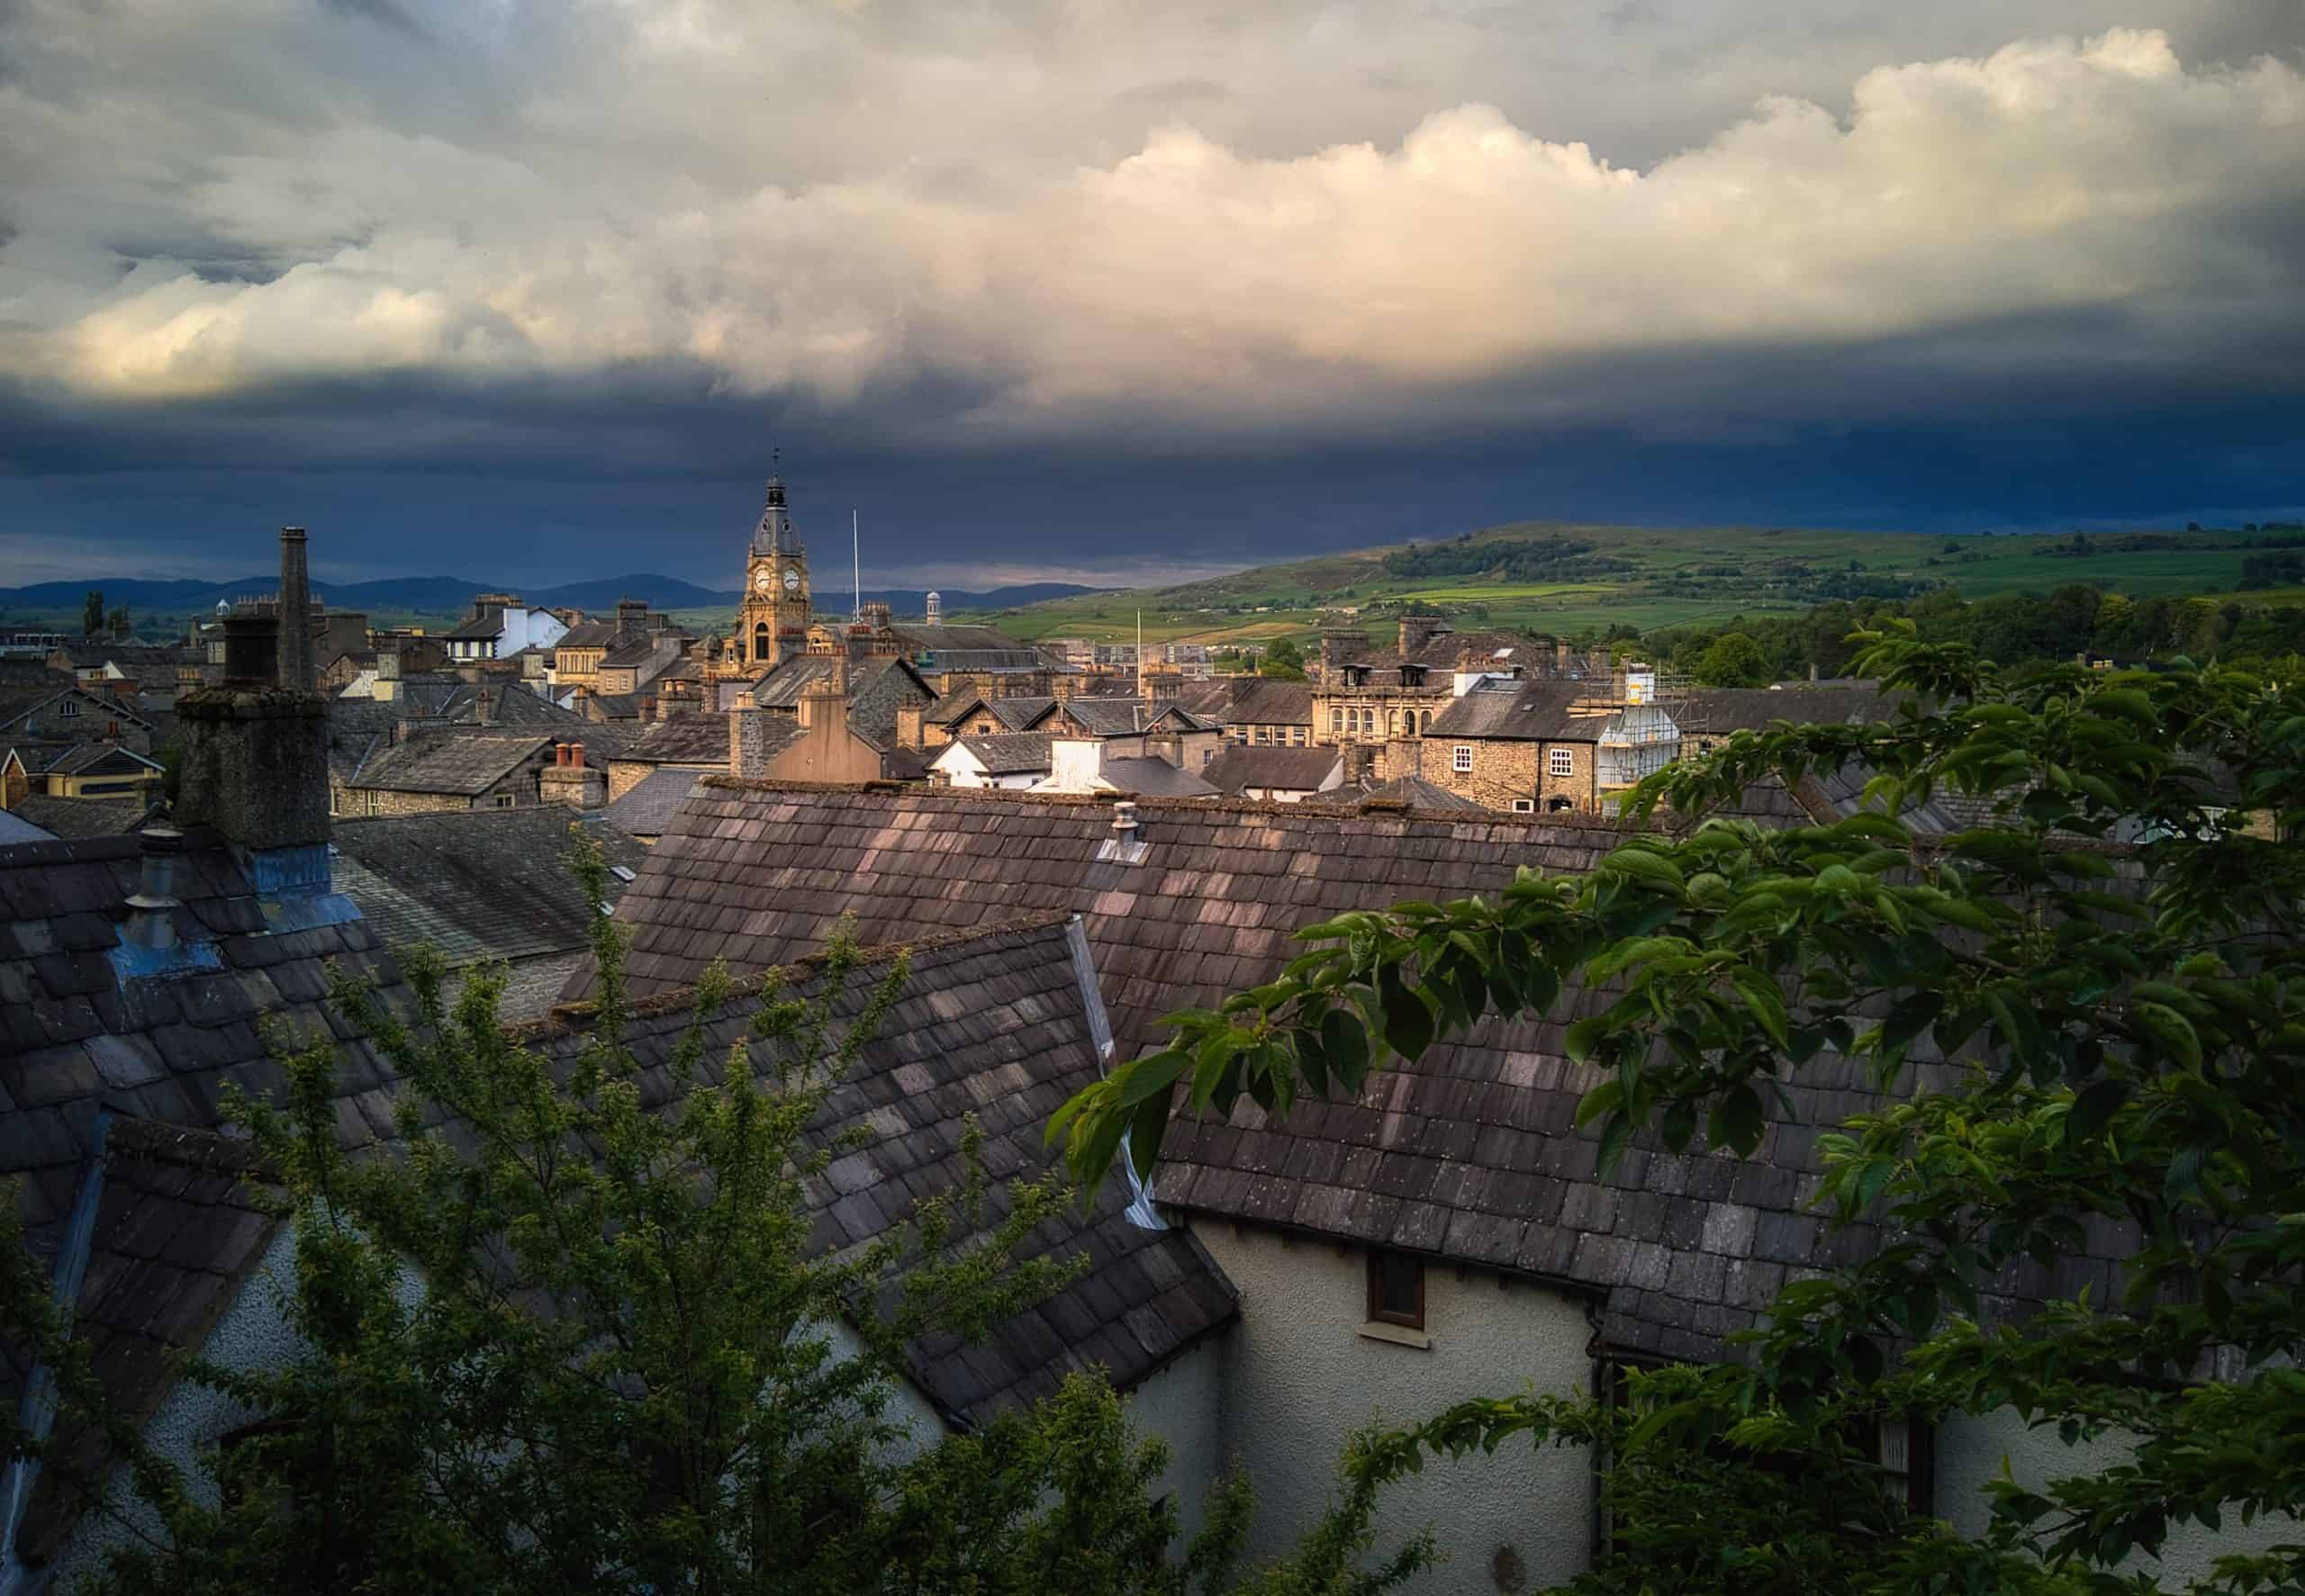 Andare a vivere in Inghilterra - Kendal